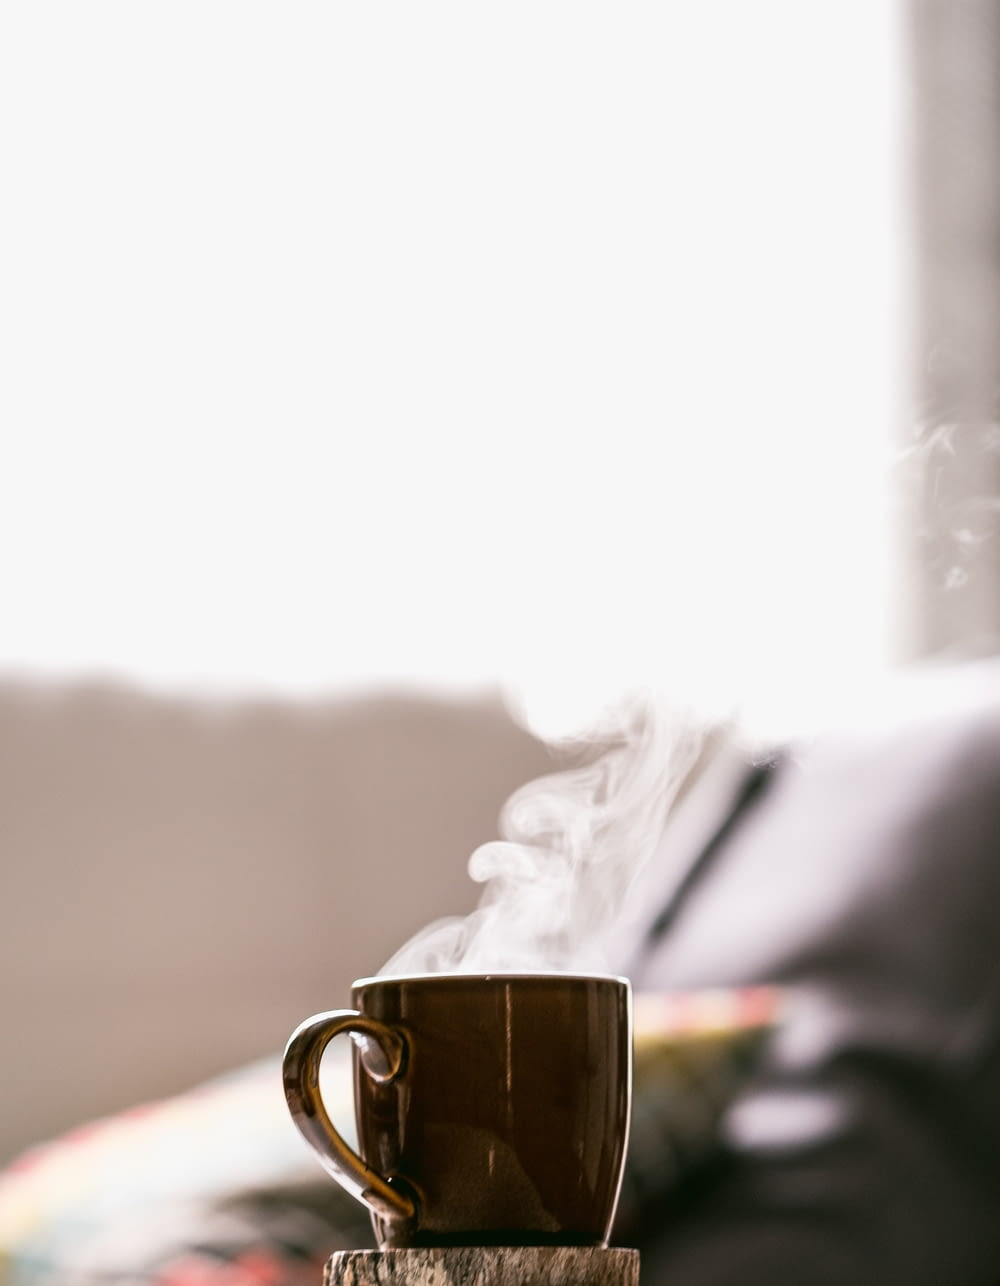 shallow focus photography of hot coffee in mug with saucer